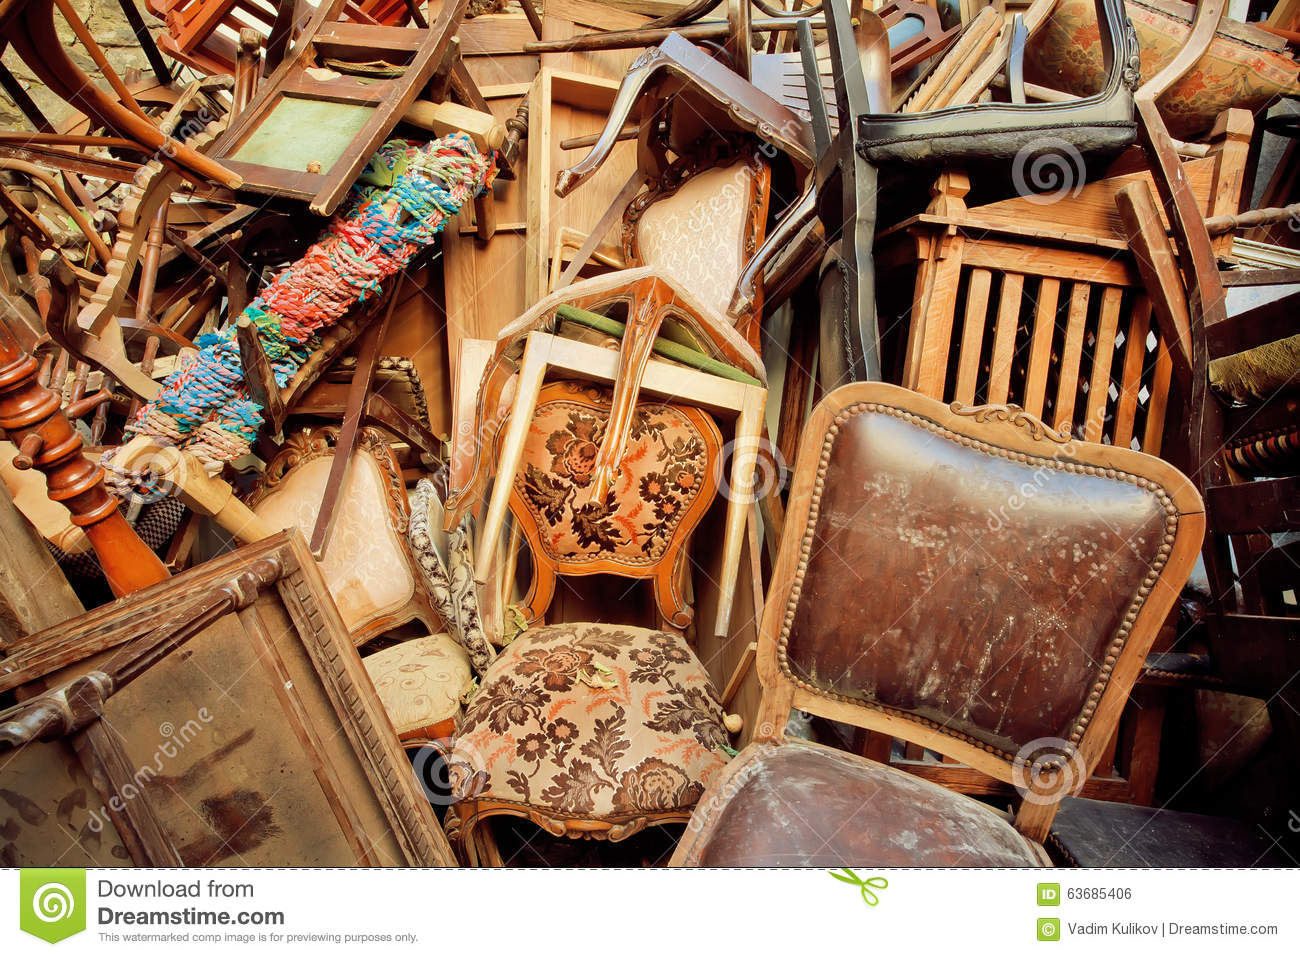 Vintage Wooden Furniture In Trash Warehouse Of Antique Market Stock Photo Image 63685406